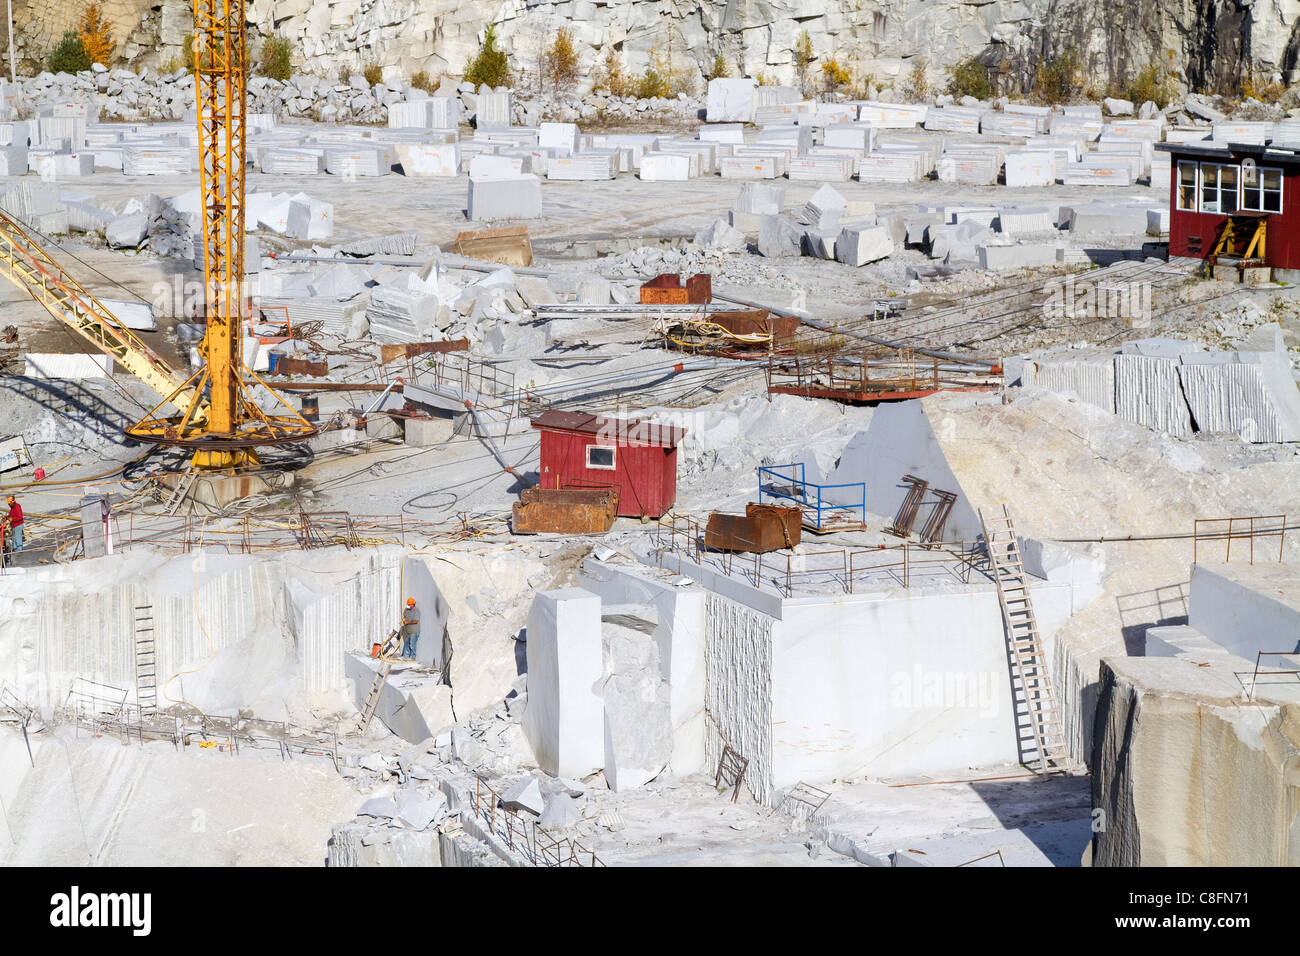 Quarry  landscape of Granite rock, stone, at Rock of Ages quarry near Barre, Vermont. - Stock Image